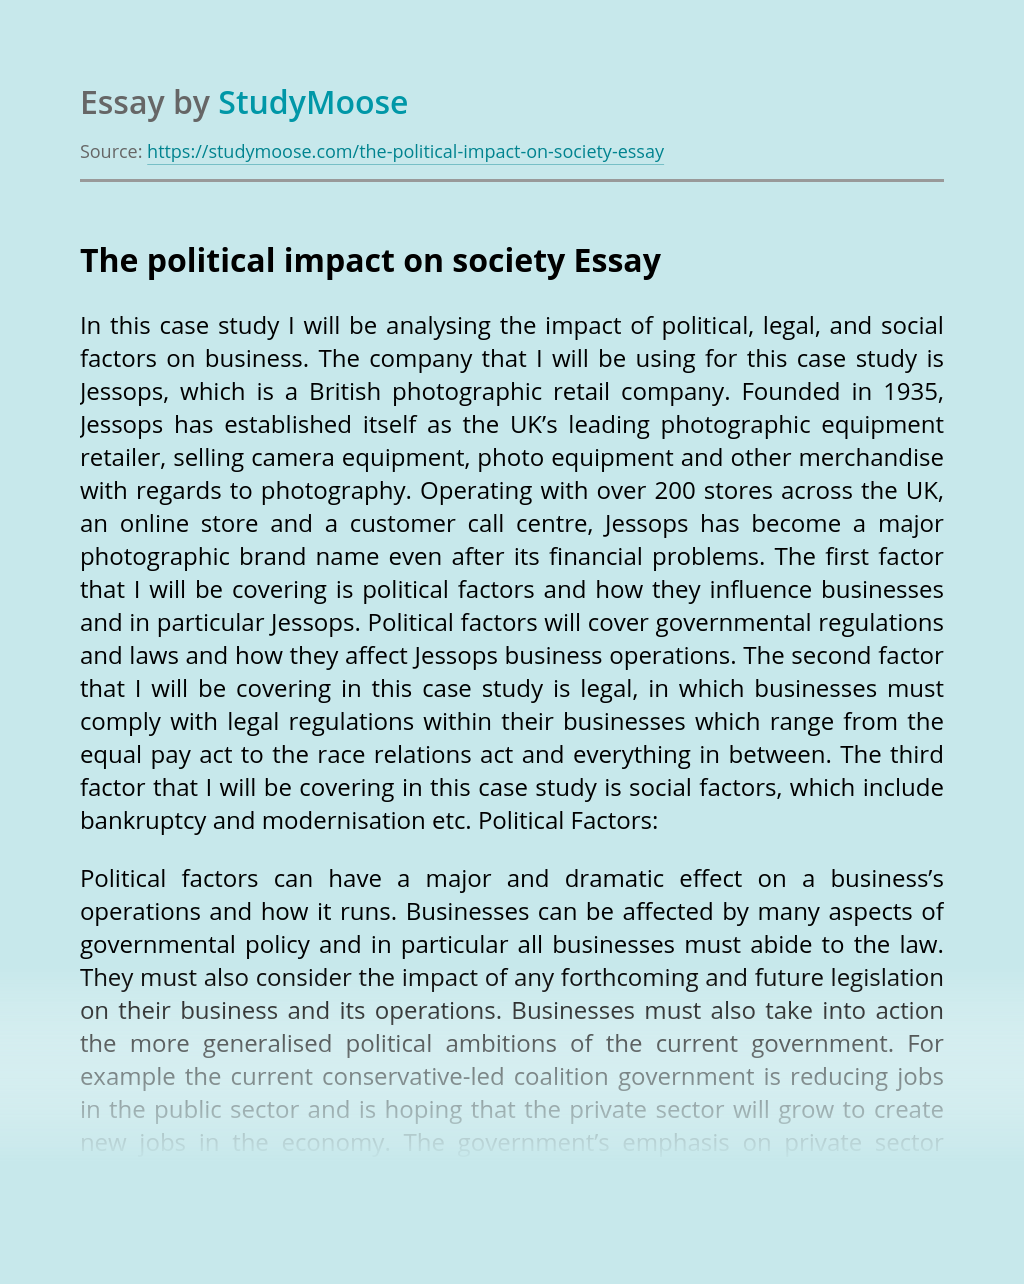 The political impact on society